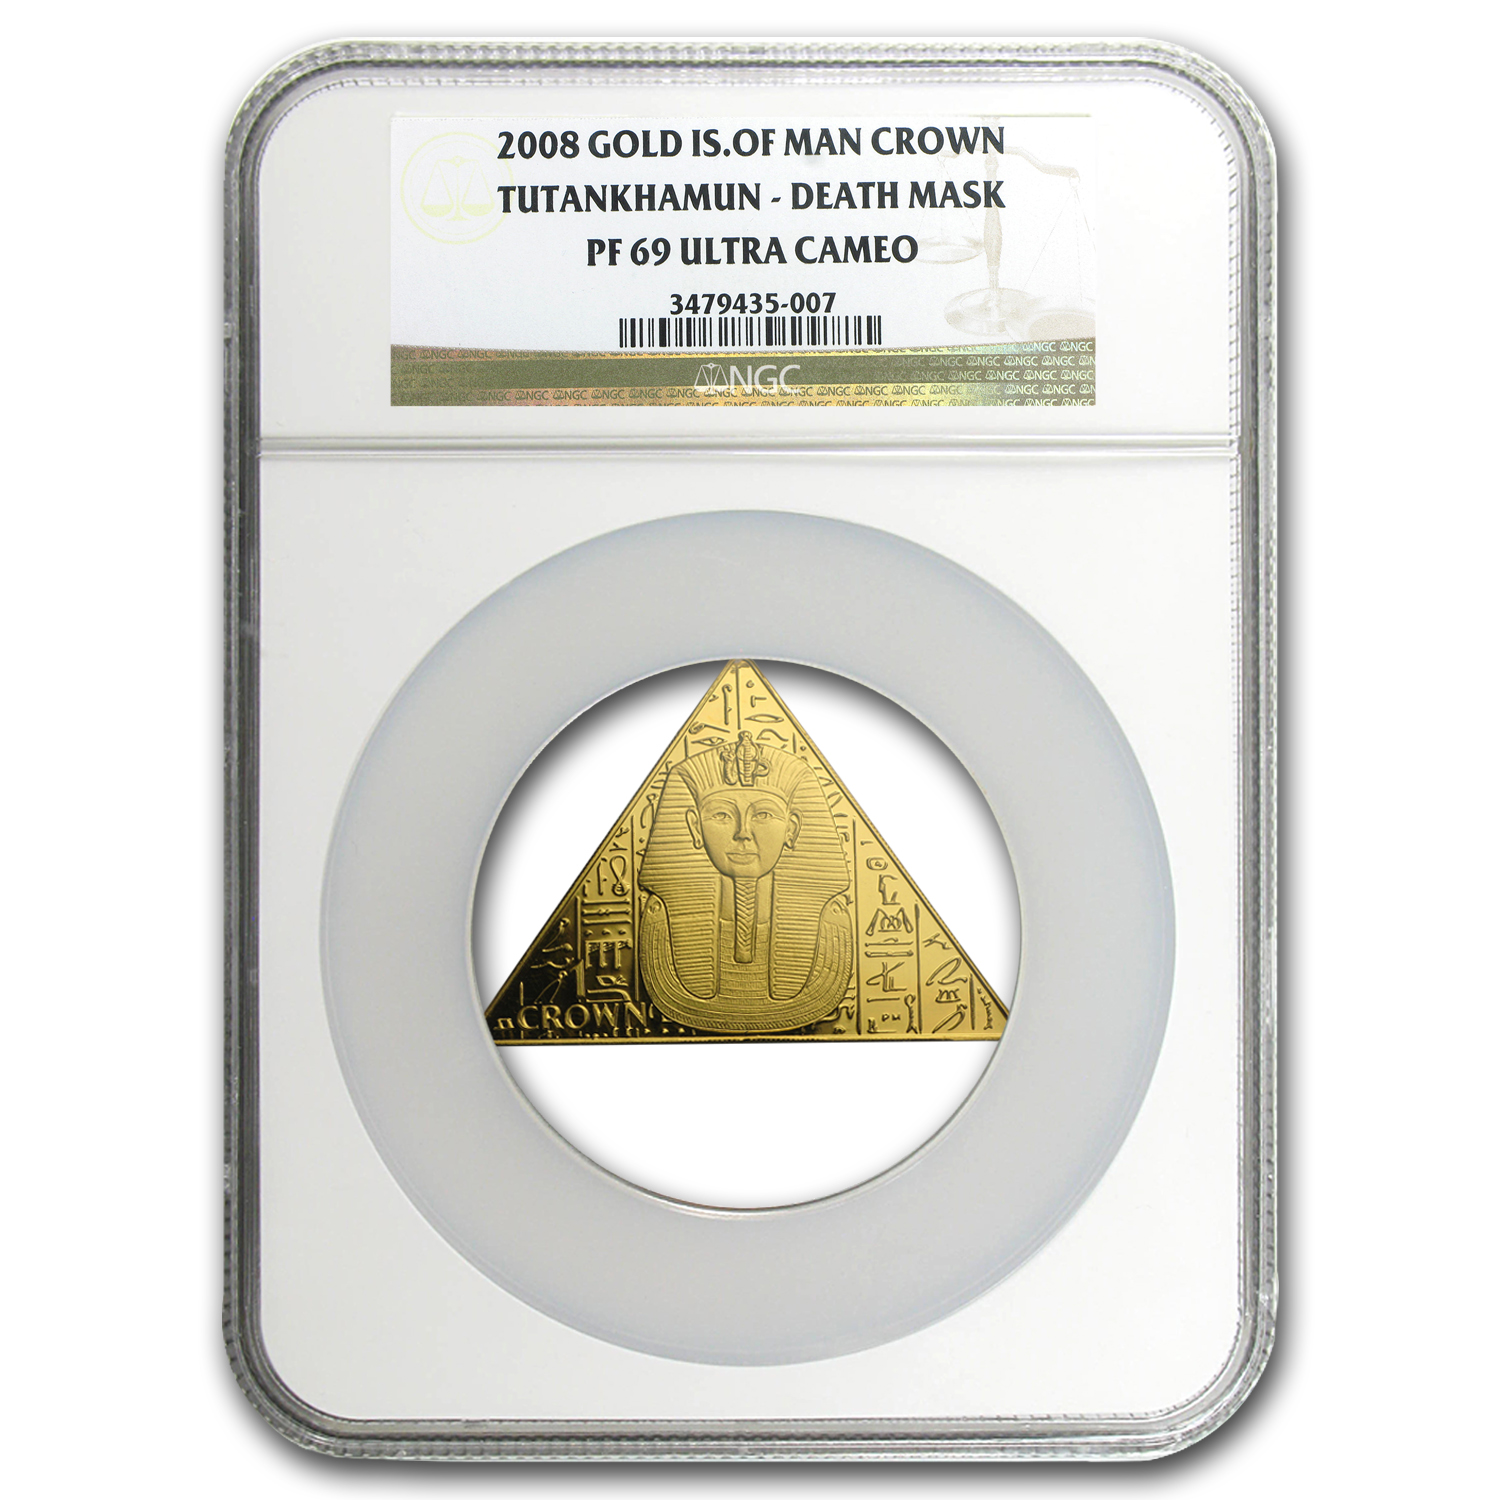 2008 IOM 1 oz Au King Tut Tr'ngle/Pyramid PF-69 NGC (Death Mask)